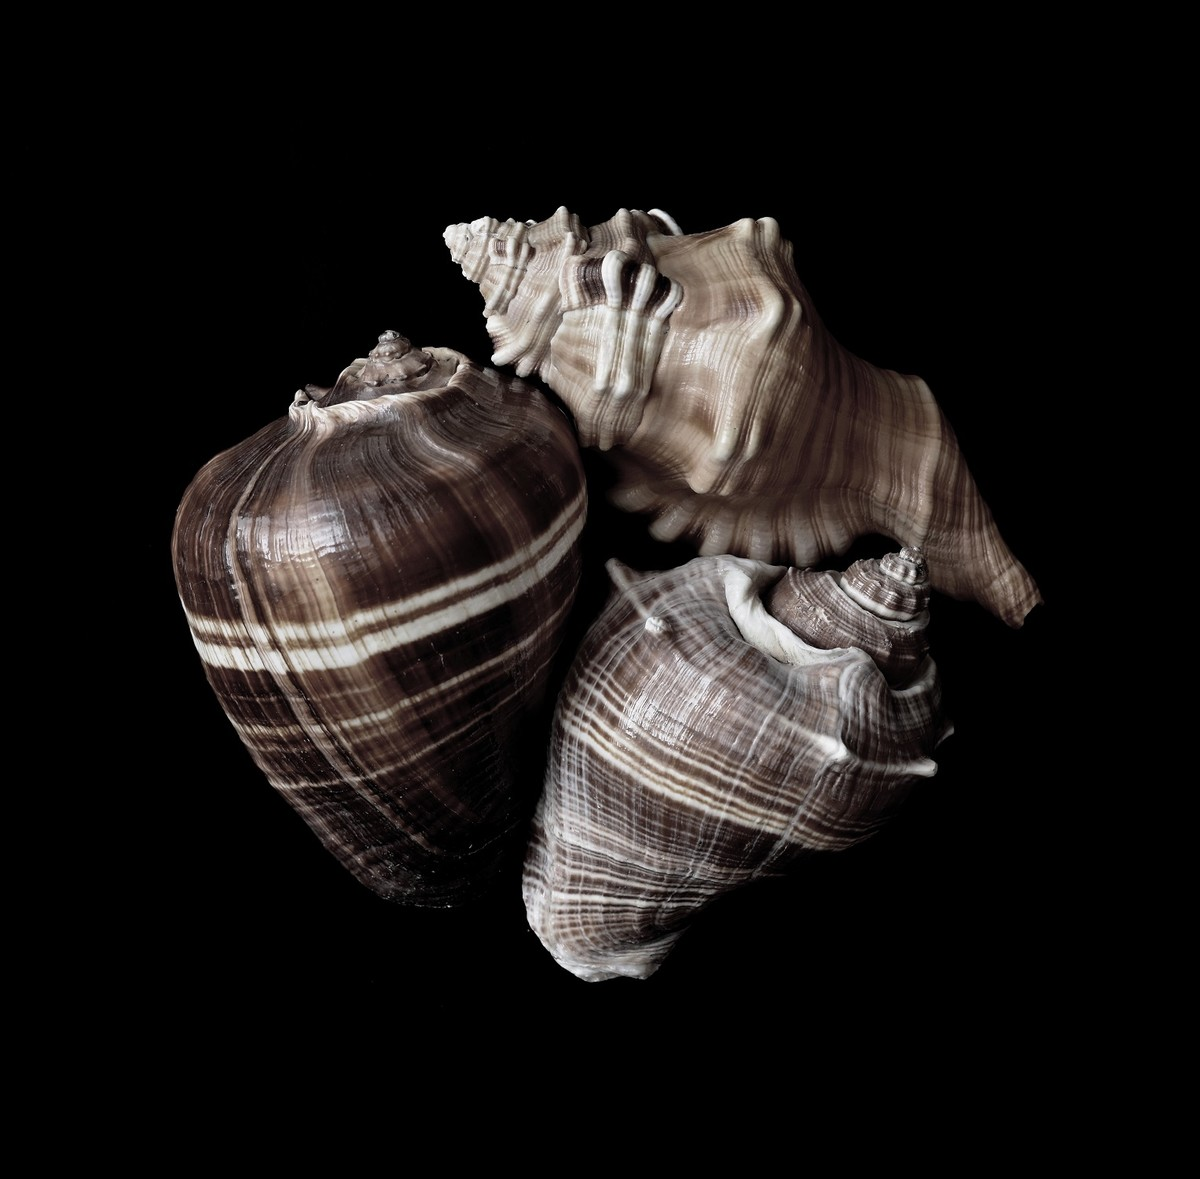 Seashells No. 5 by M. Shafiq, Image Photography, Digital Print on Archival Paper, Licorice color